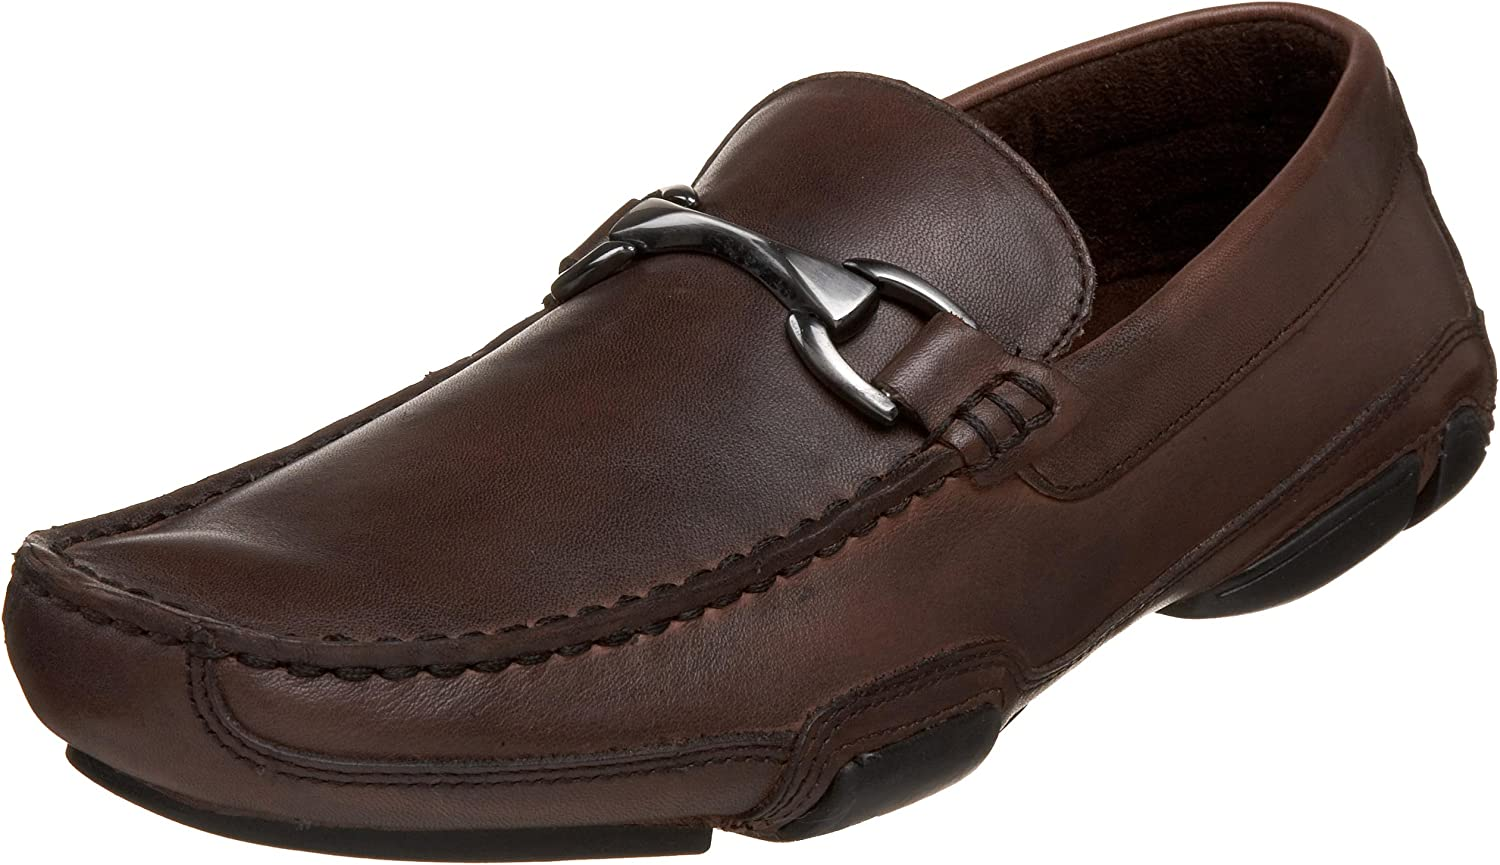 Kenneth Cole REACTION Men's A Man' World Driving Moc